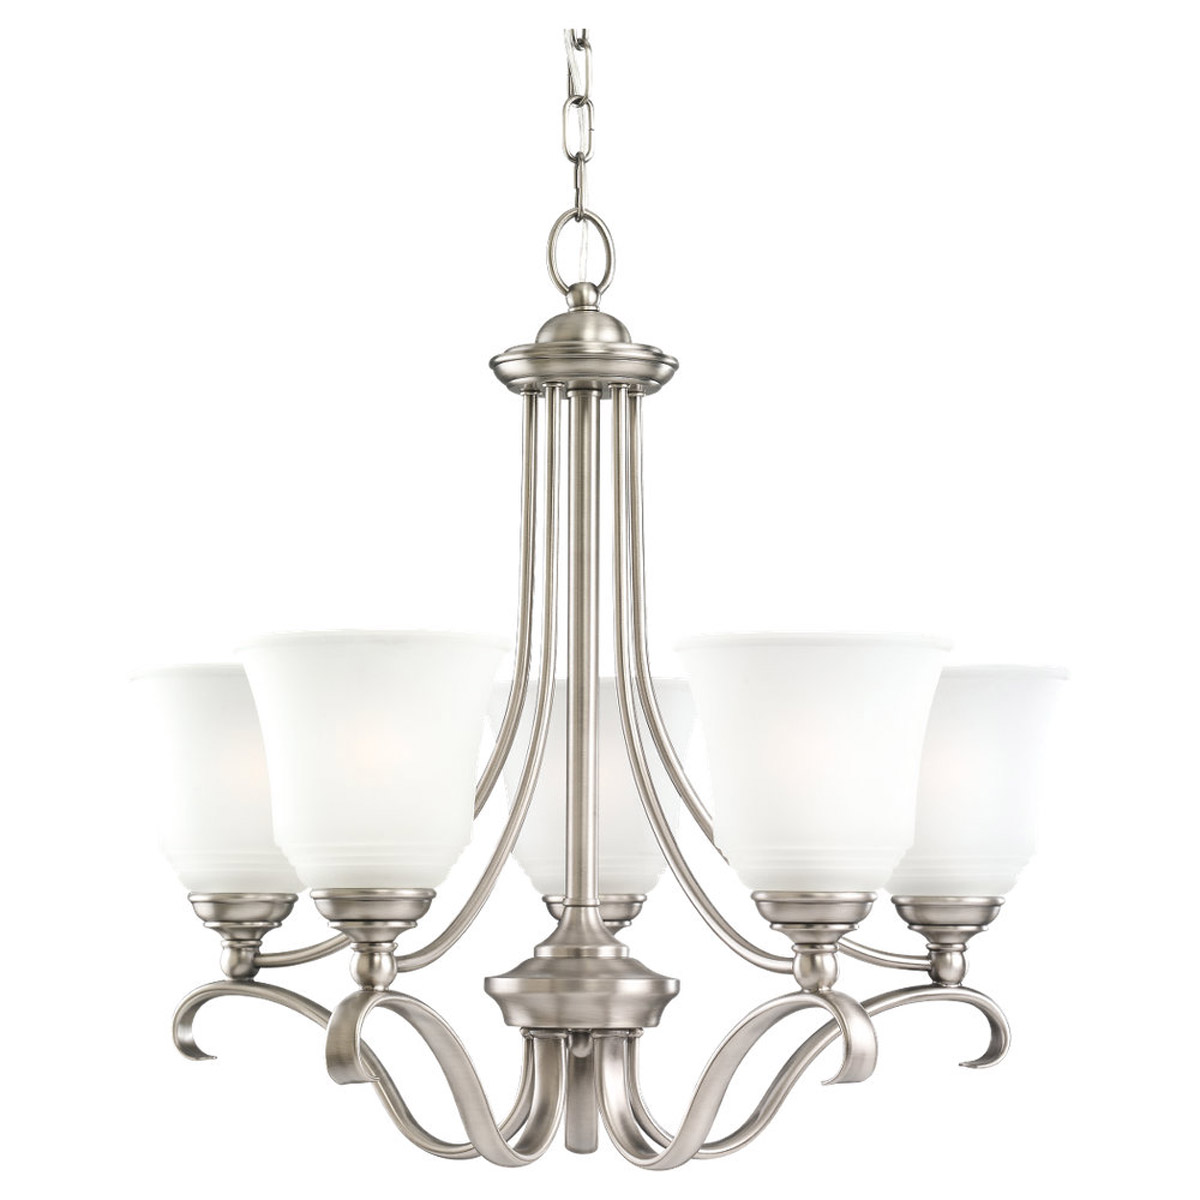 Sea Gull Lighting Parkview 5 Light Chandelier in Antique Brushed Nickel 39380BLE-965